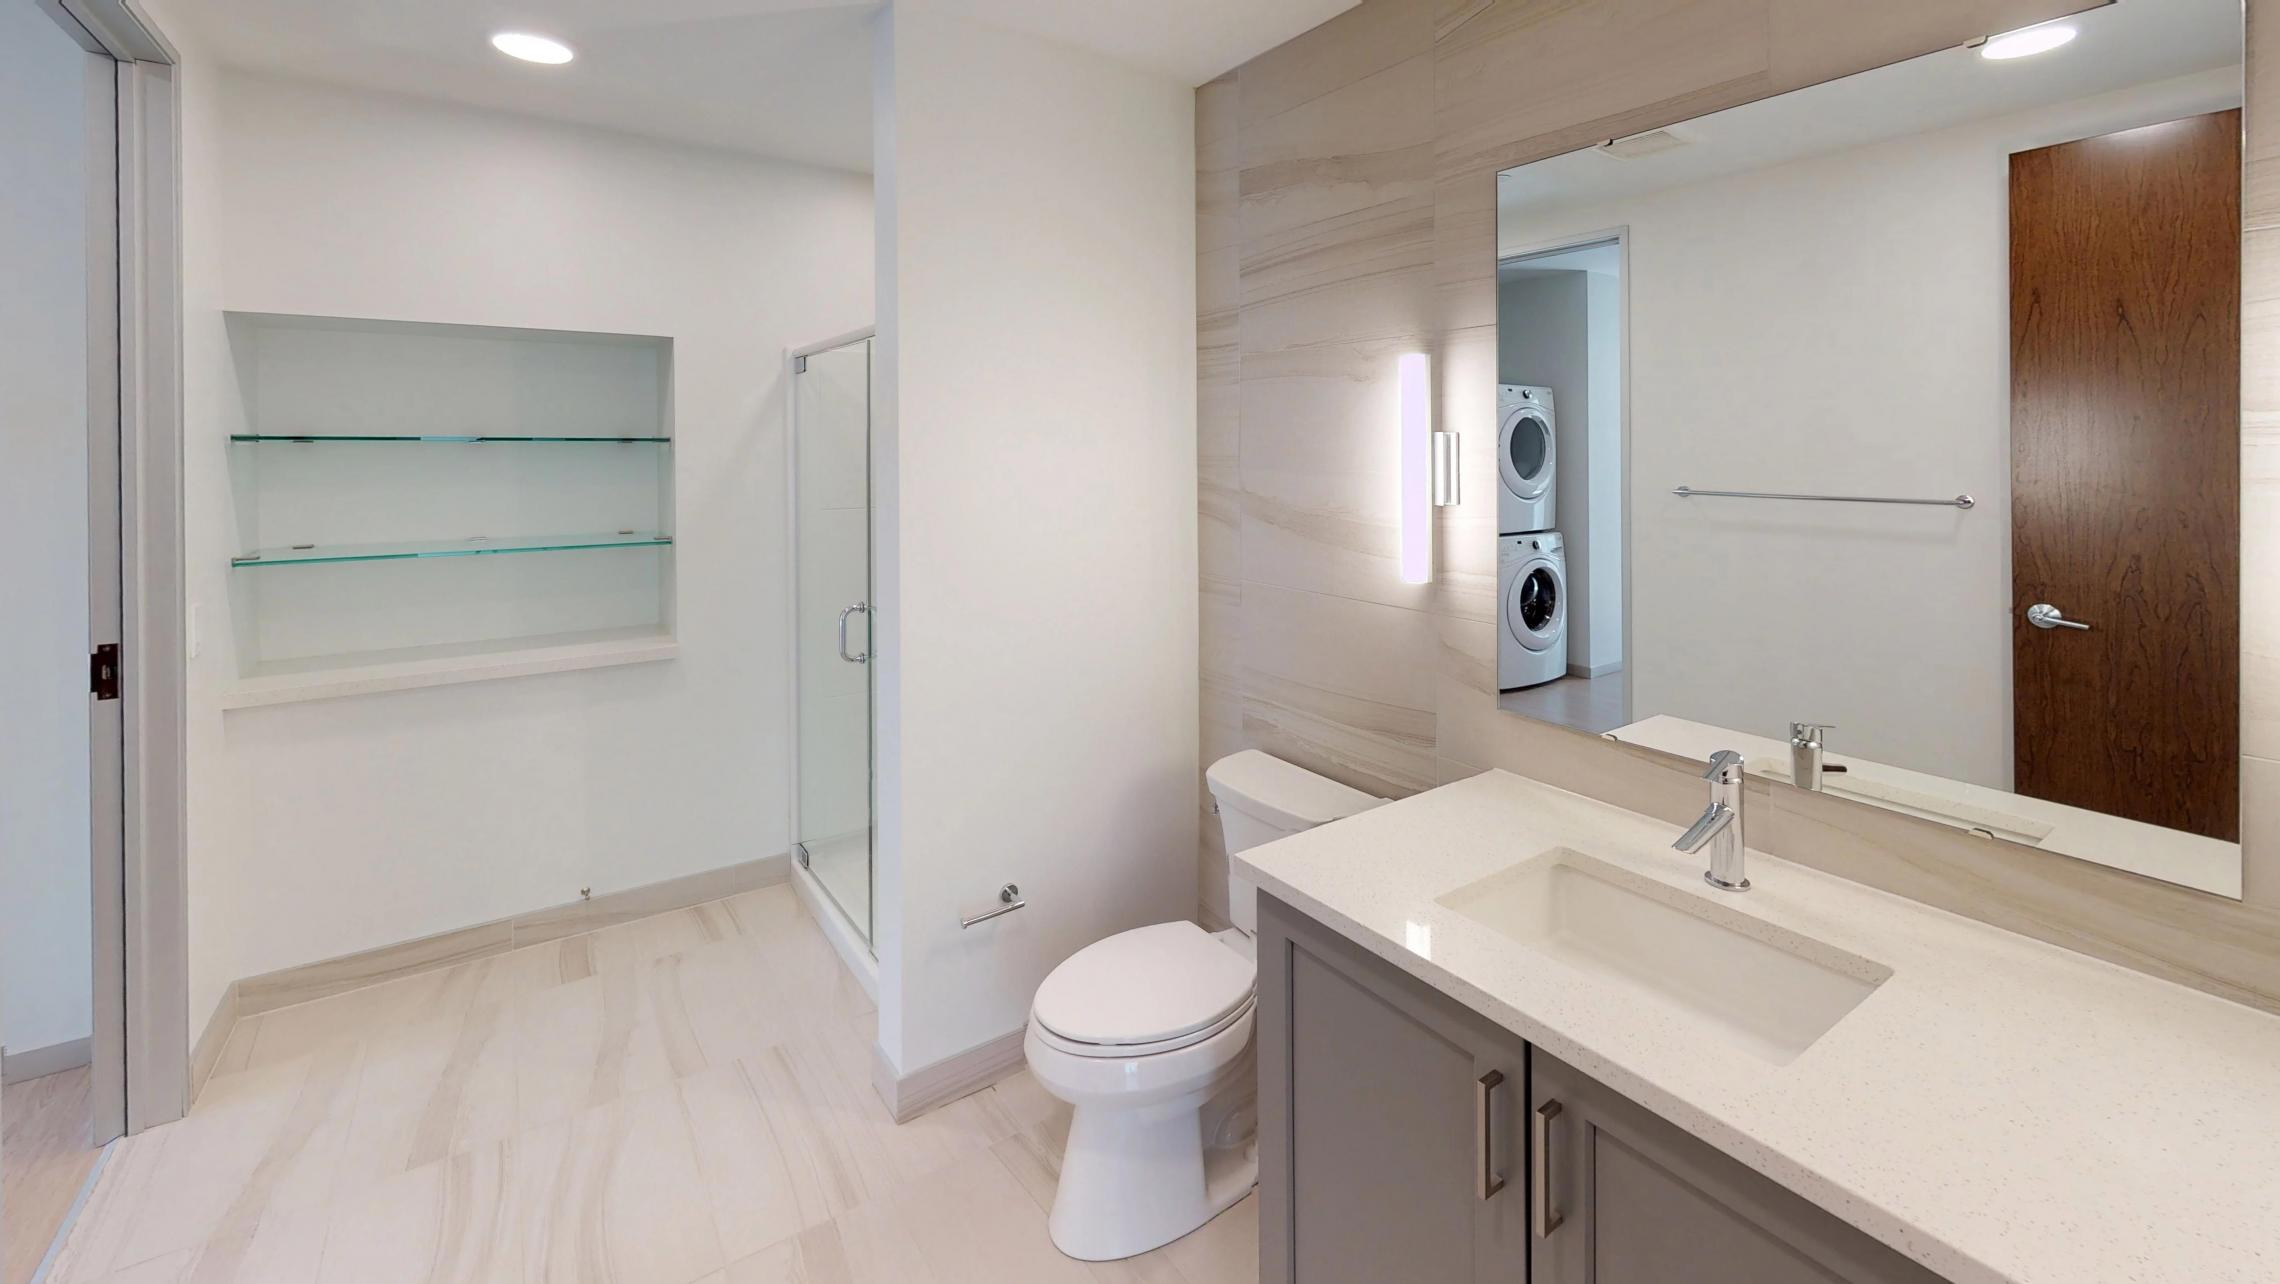 Pressman-311-Apartment-One-Bedroom-Luxury-Modern-Upscale-Downtown-Capitol-Concrete-Madison-Kitchen-Island-Living-Room-Sunny-Bright.jpg